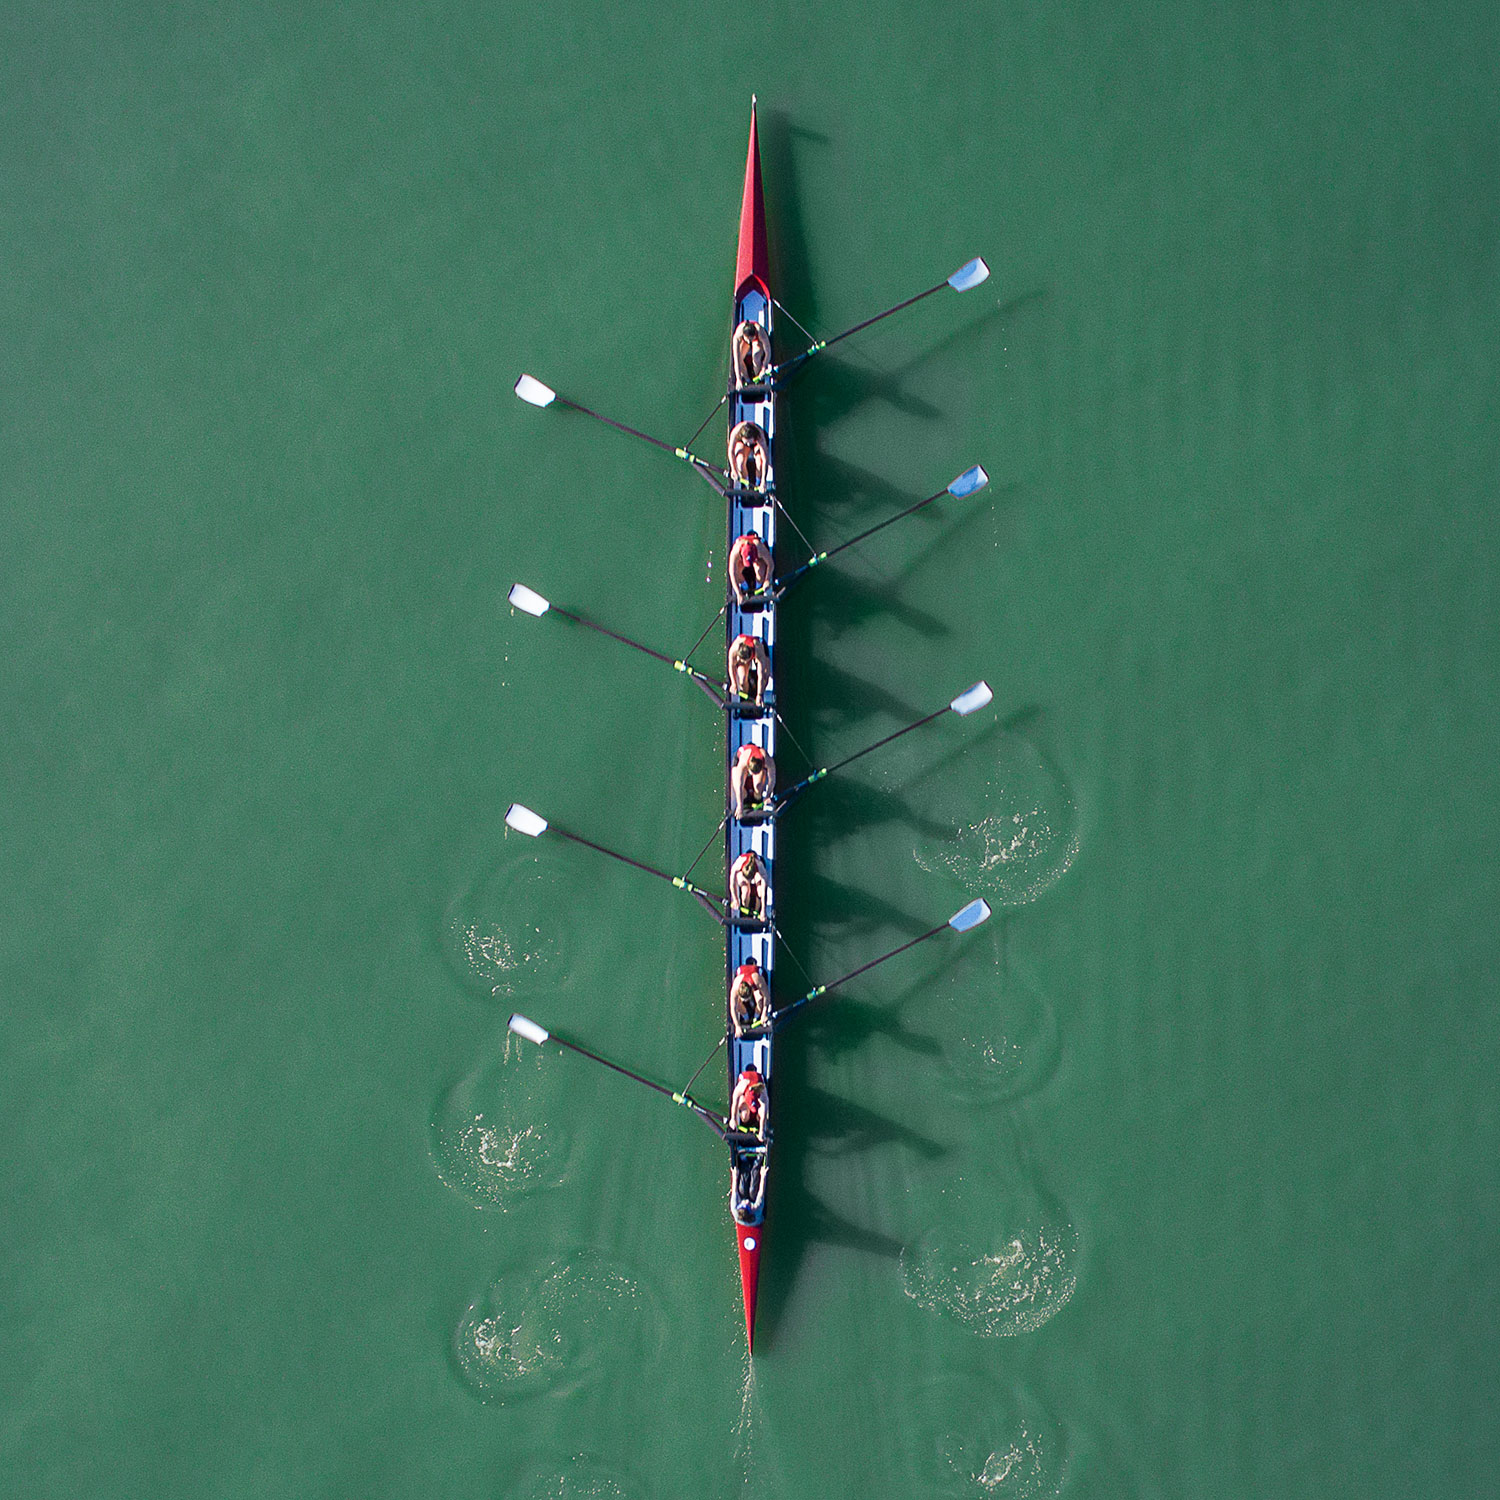 SMU-ROW-RACES---DJI_0004